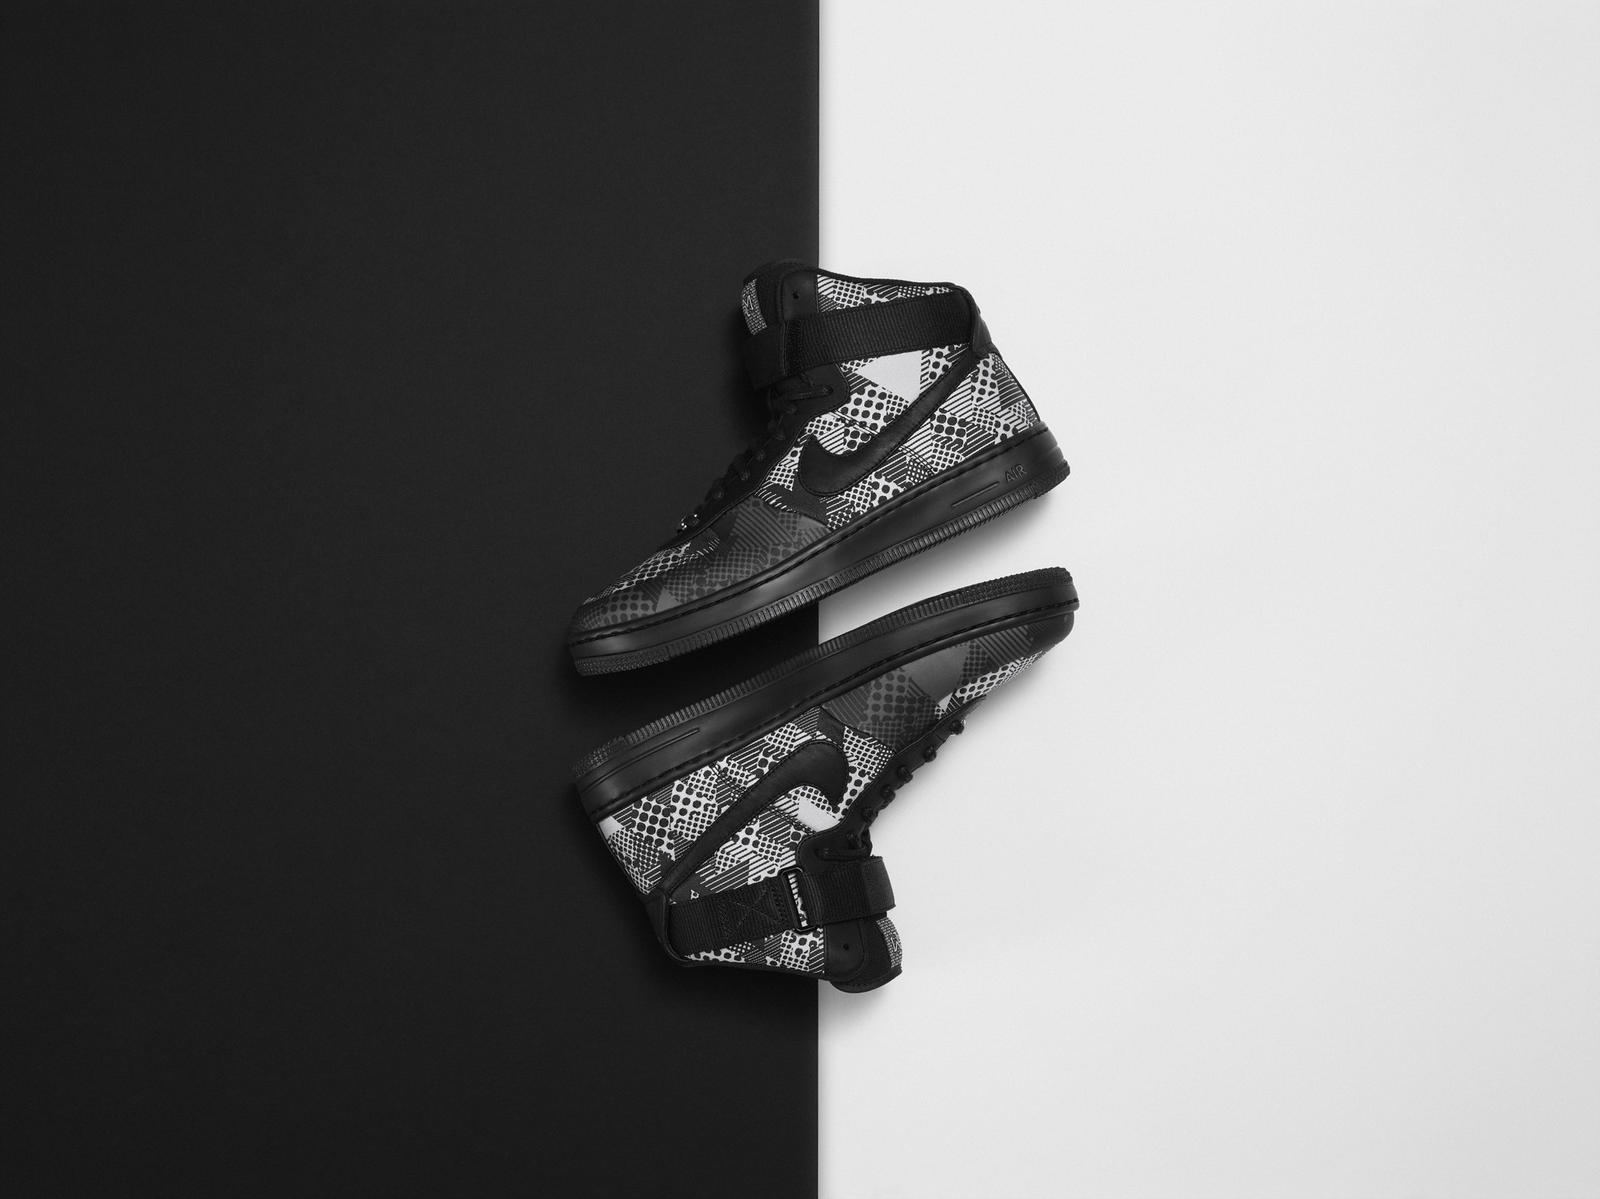 buy online 48c64 b70ef Nike_SP15_BHM_FTWR_WMNS_AMX1_Final. Air Max 1 Ultra BHM (Women's) featuring  the new BHM prints. Nike_SP15_BHM_FTWR_WMNS_AF1_Final